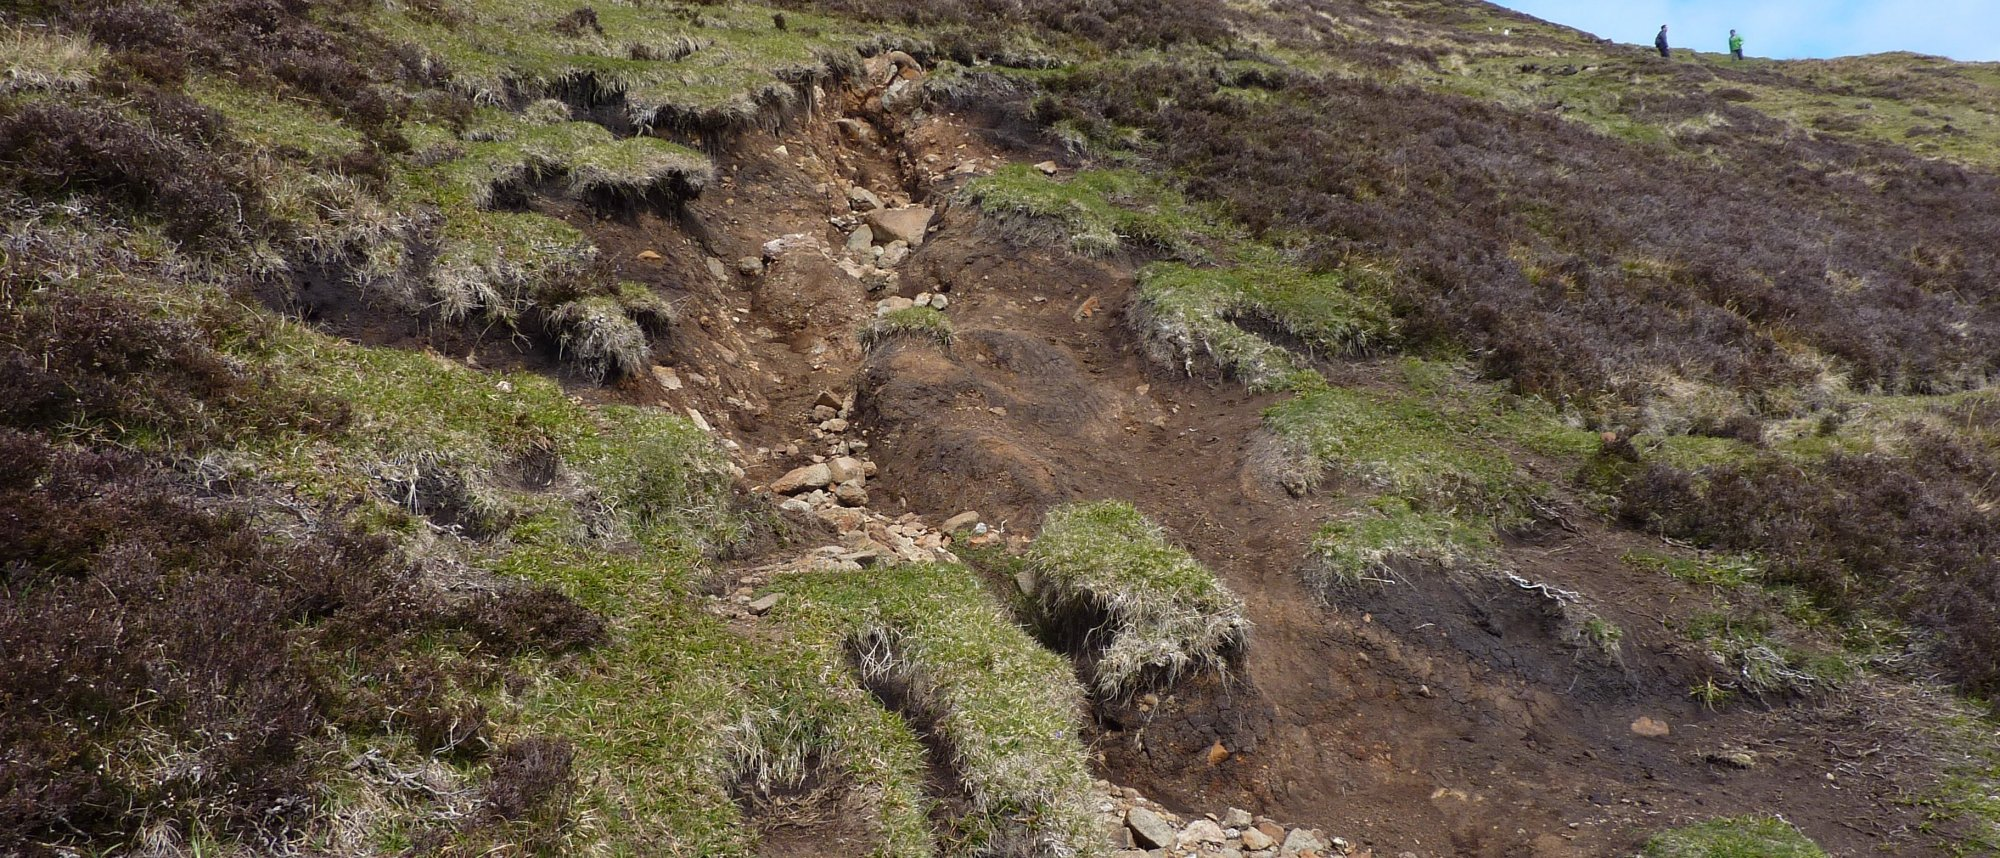 The dreadful, eroded path down from to the lower Quiraing path; when wet, this must be a nightmare